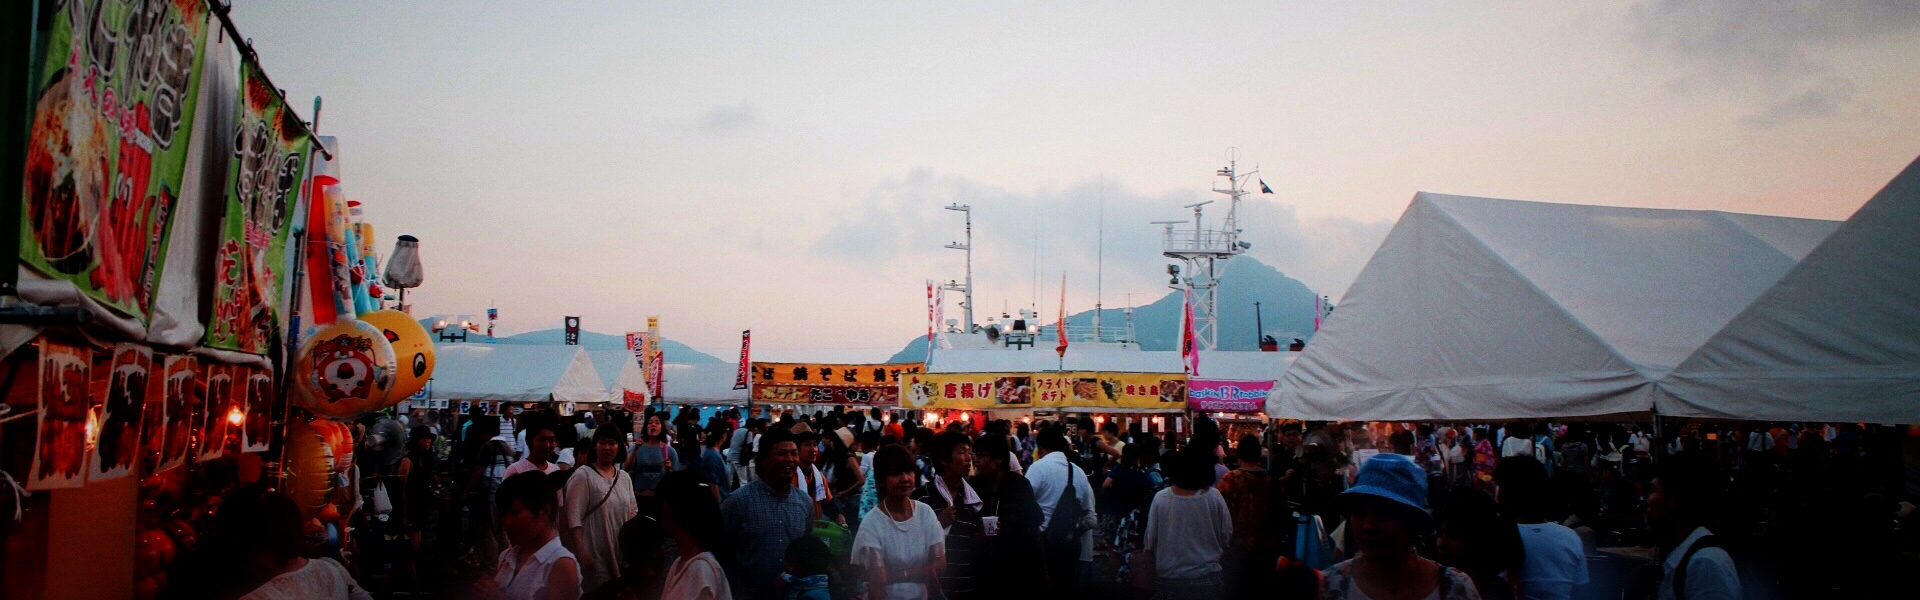 SASEBO SEASIDE FESTIVAL 2017